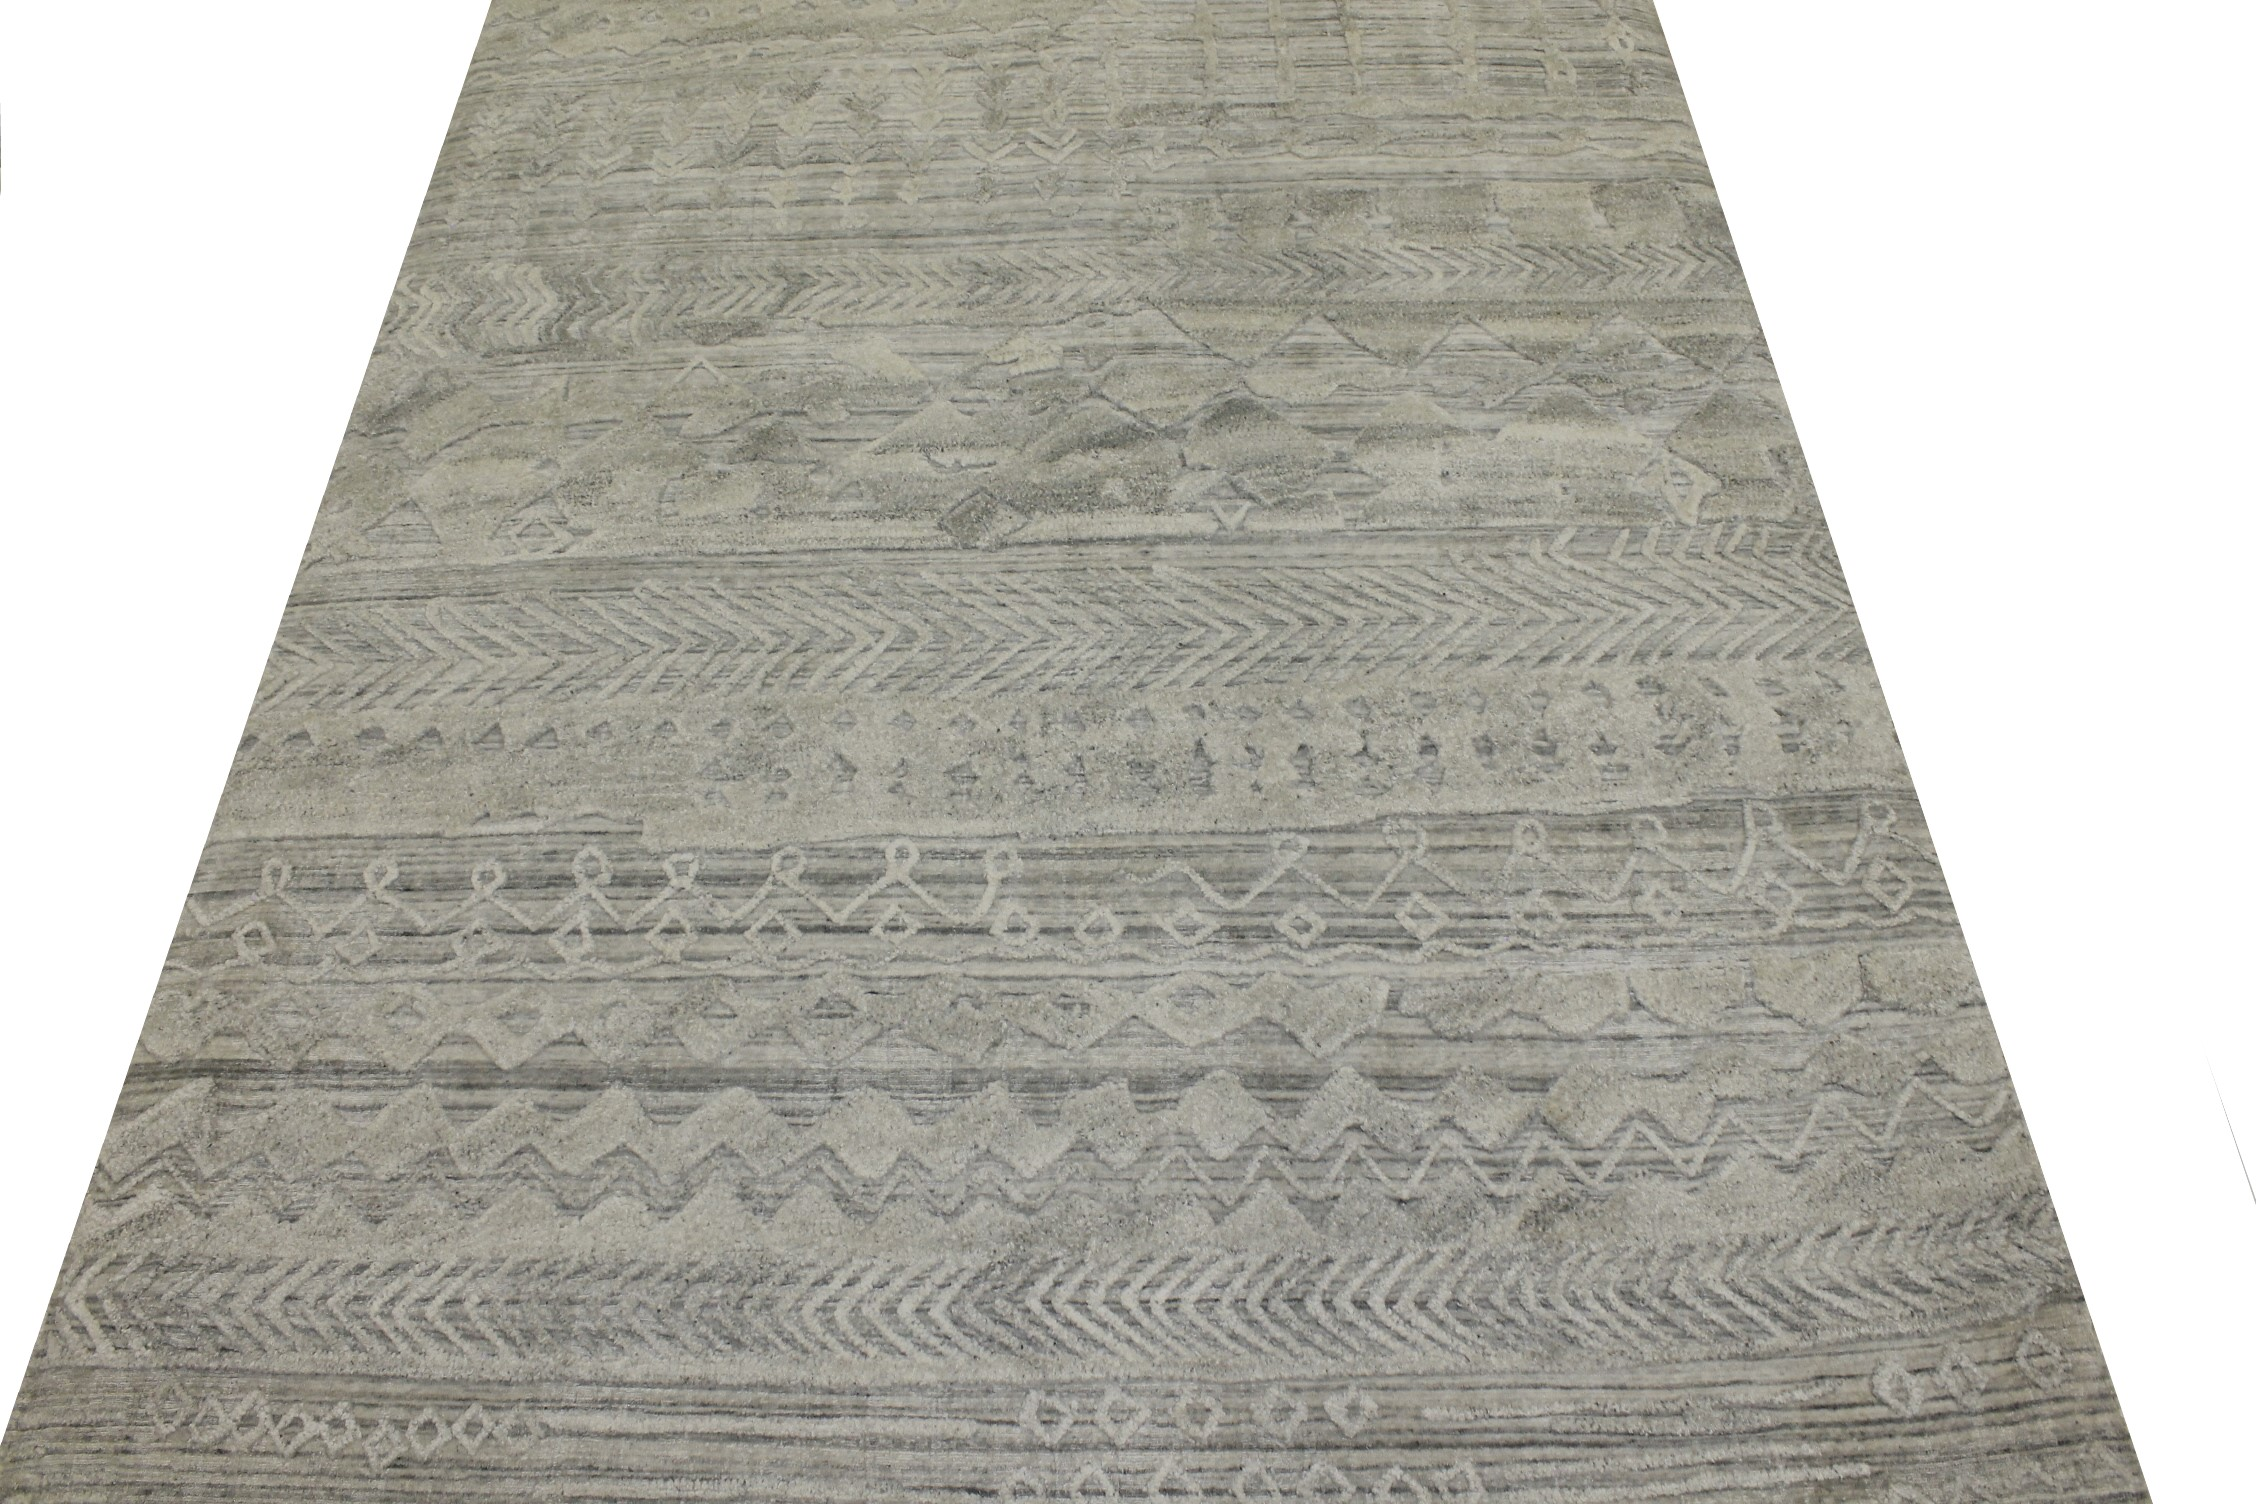 5x7/8 Contemporary Hand Knotted Wool Area Rug - MR022277